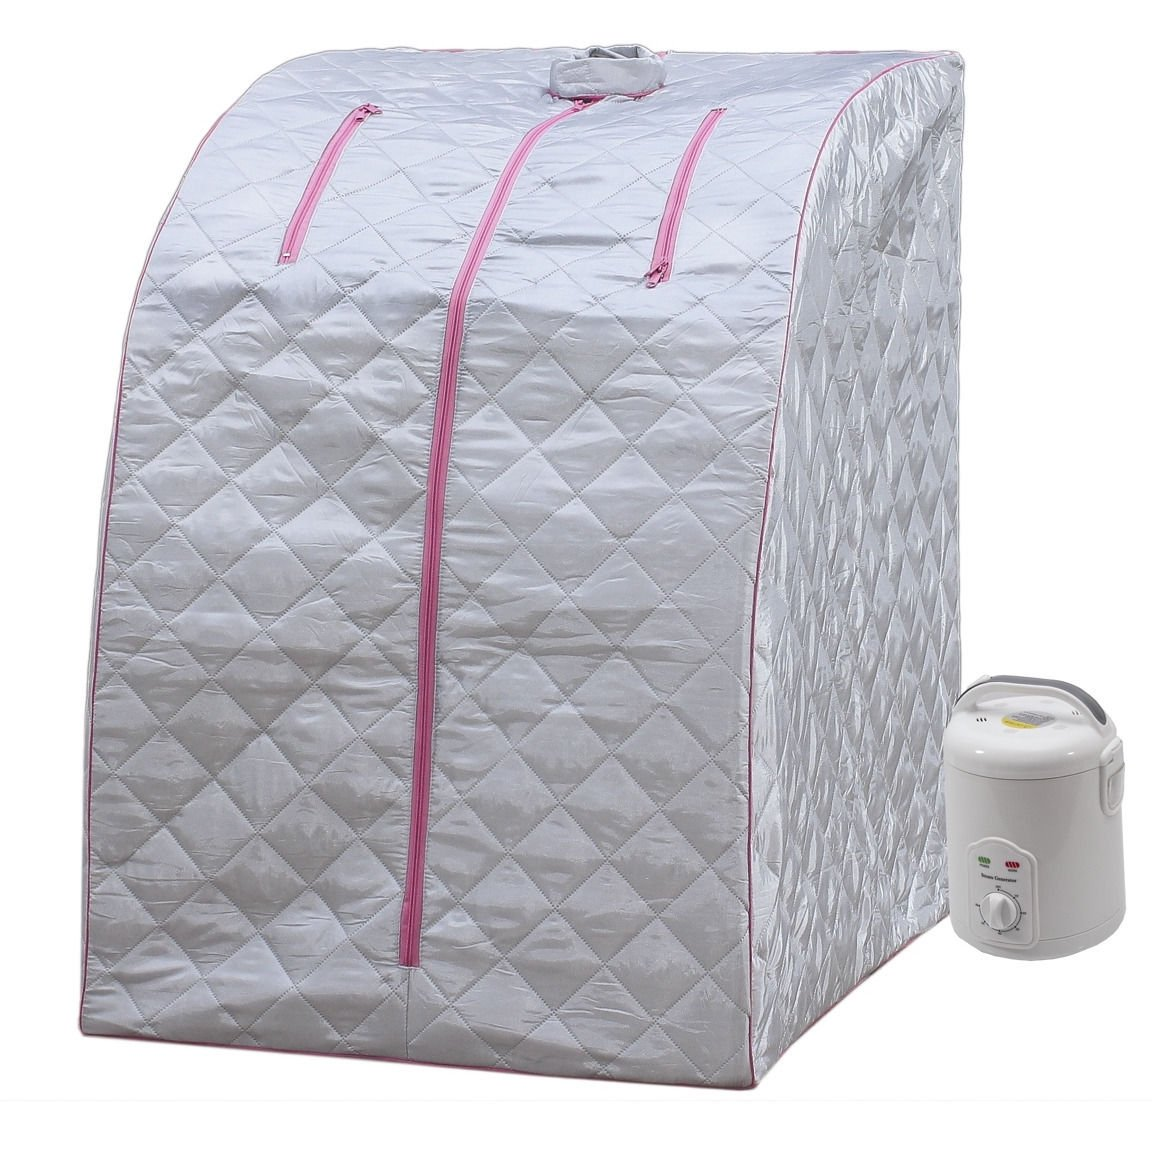 Lightweight Personal Steam Sauna by Durasage for Relaxation at Home, 60 Min Timer - Pink by DSS-404